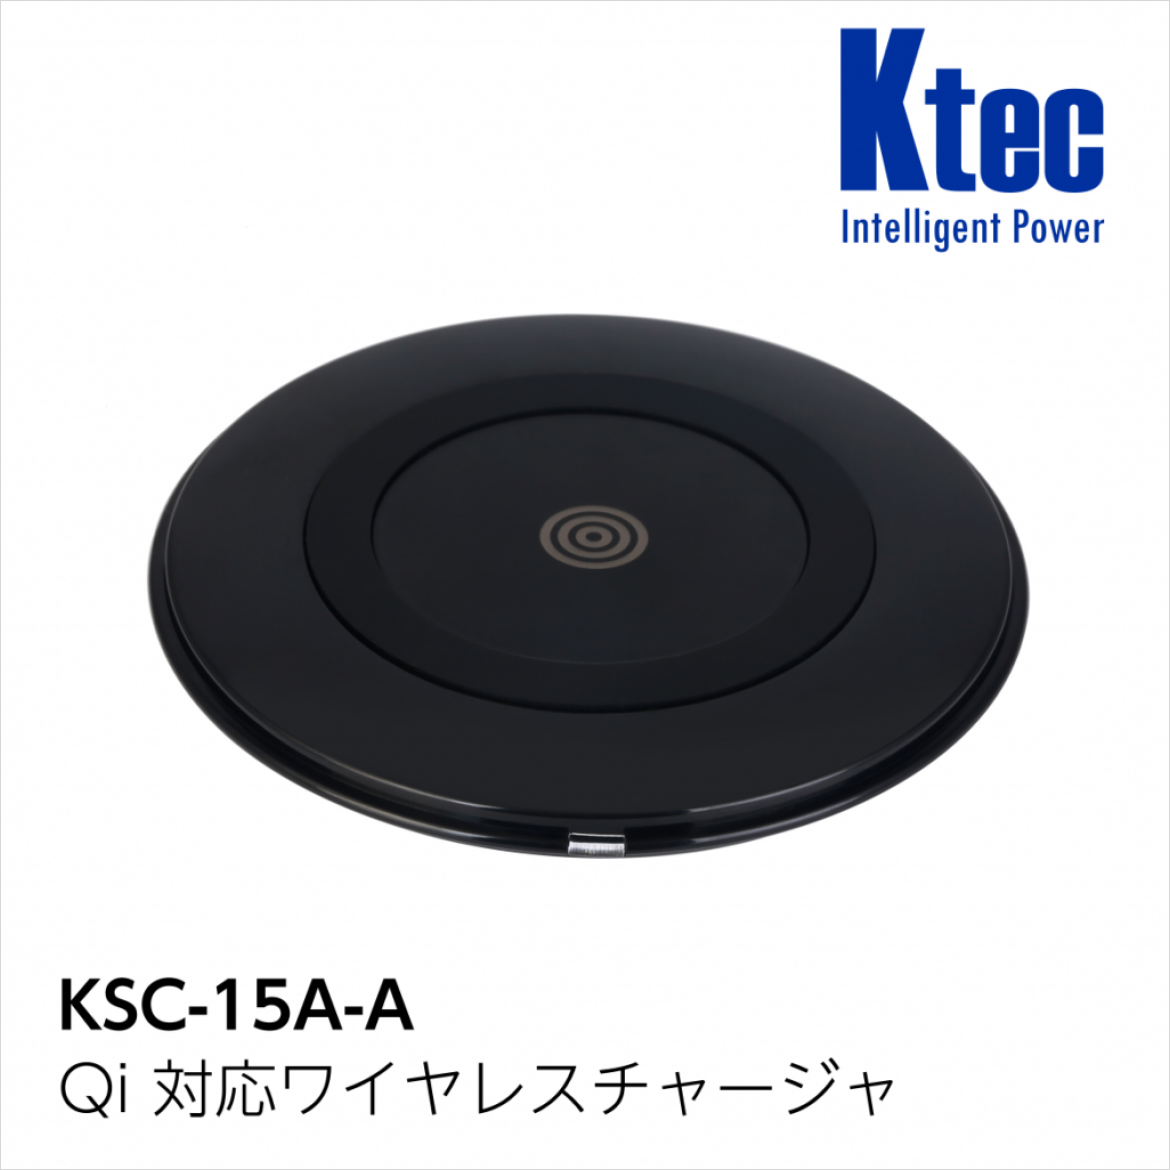 KSC-15A-A Qi対応ワイヤレスチャージャ